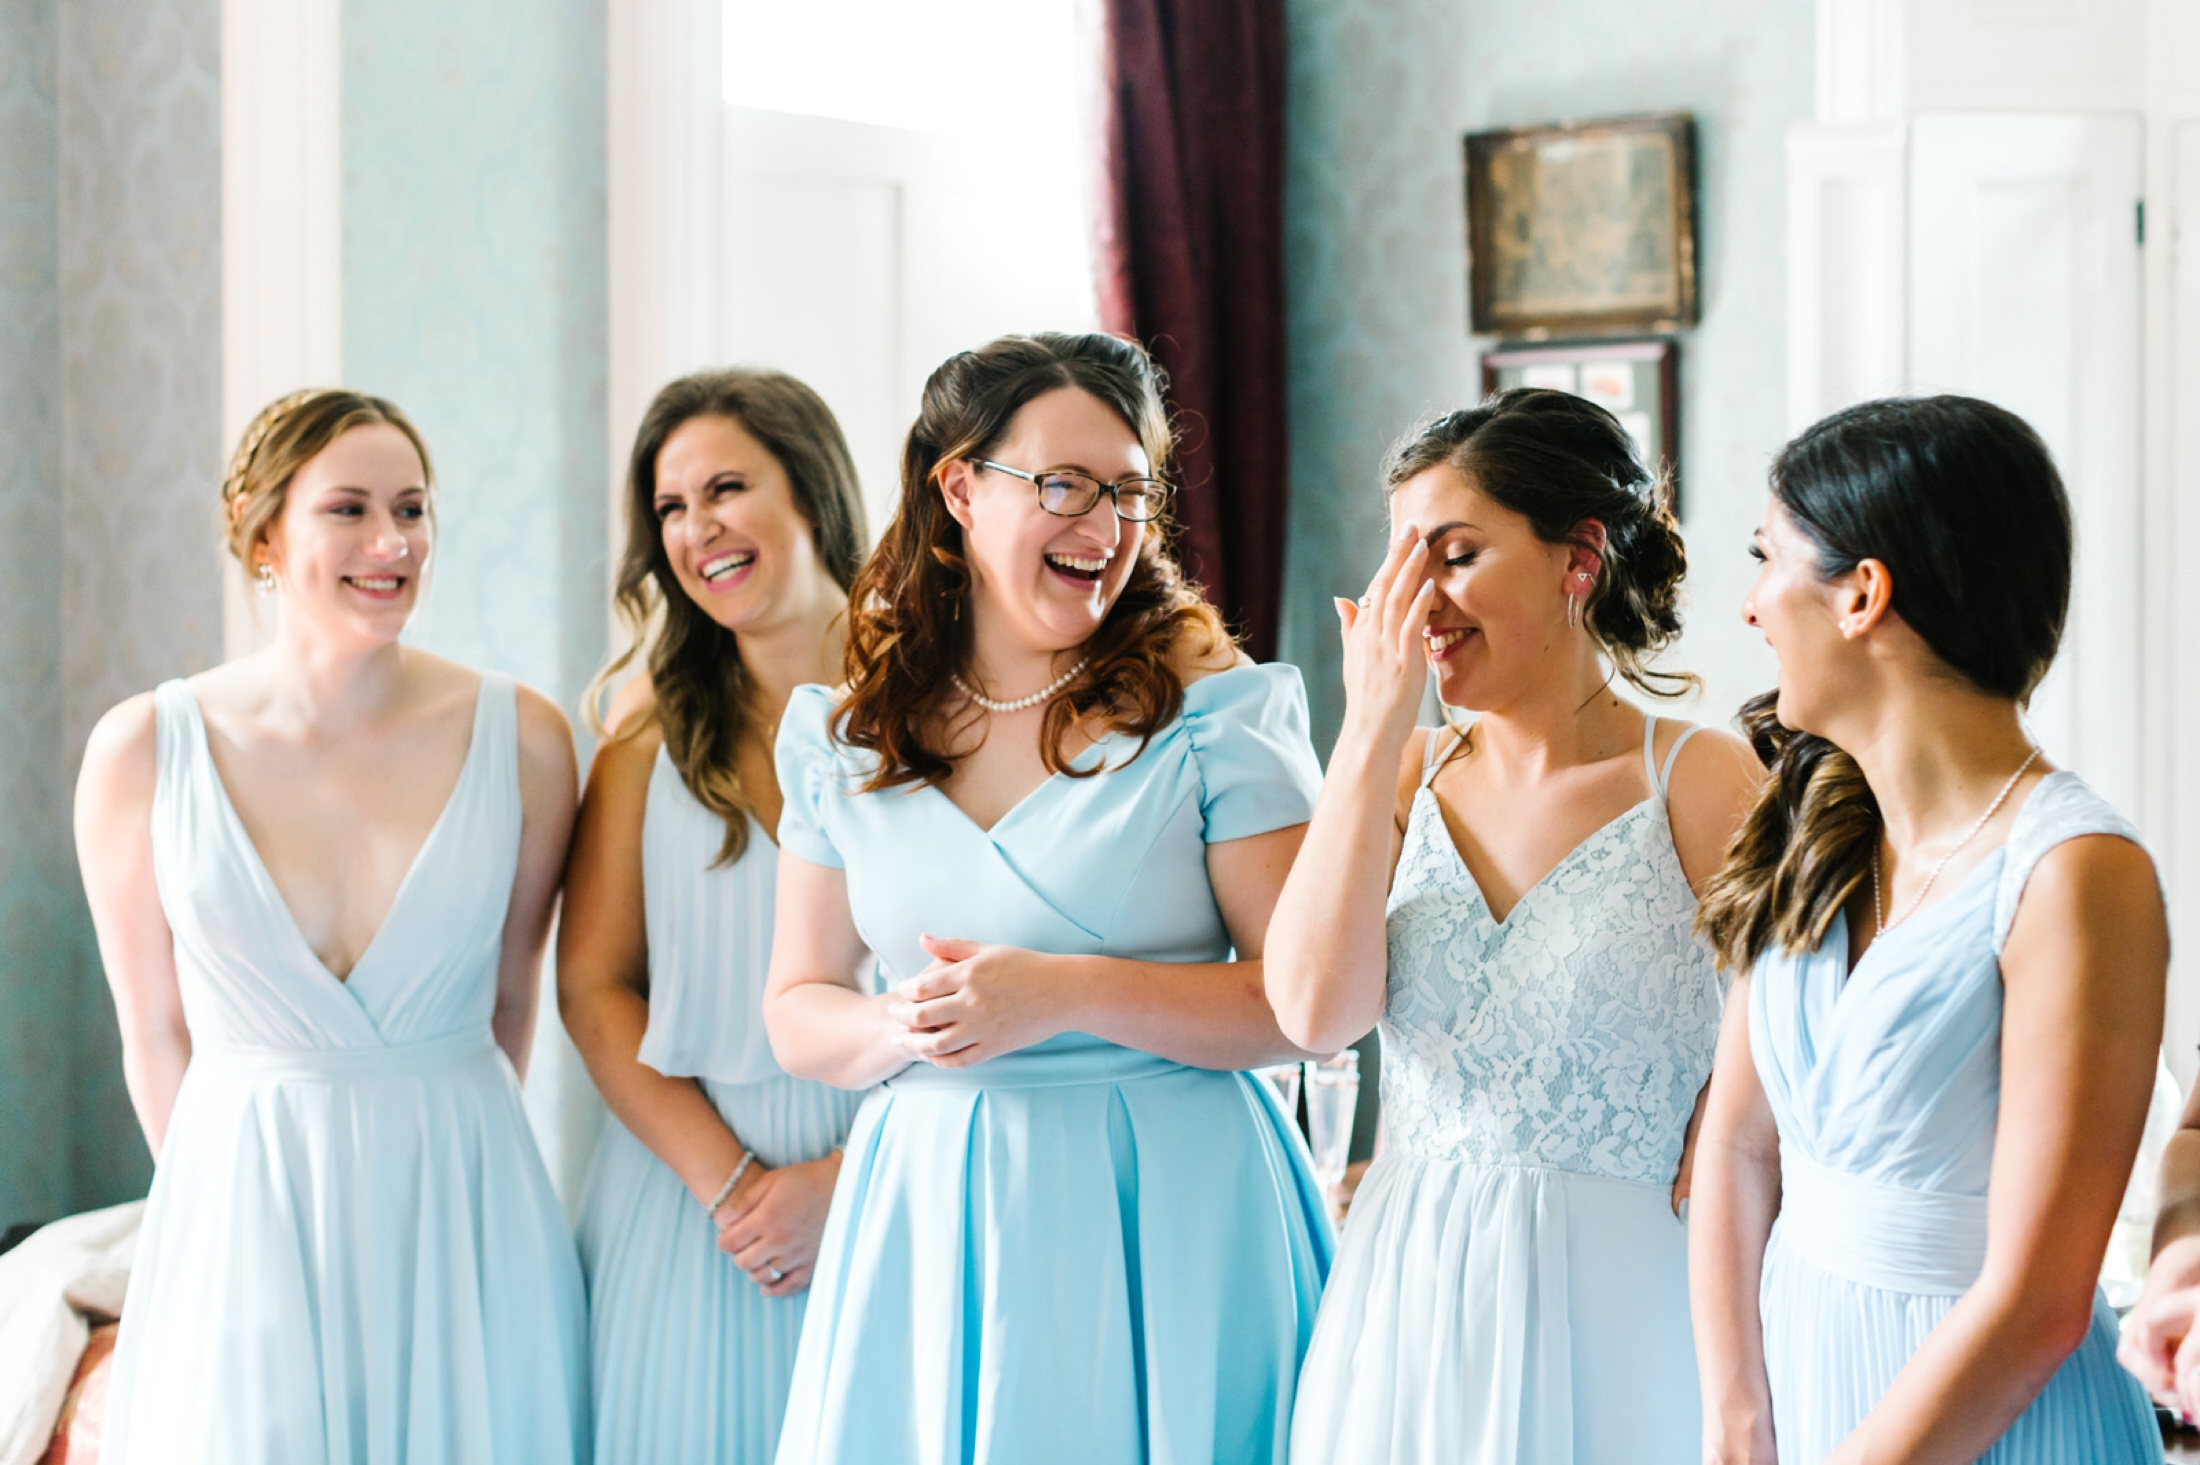 St Albans Town Hall Wedding